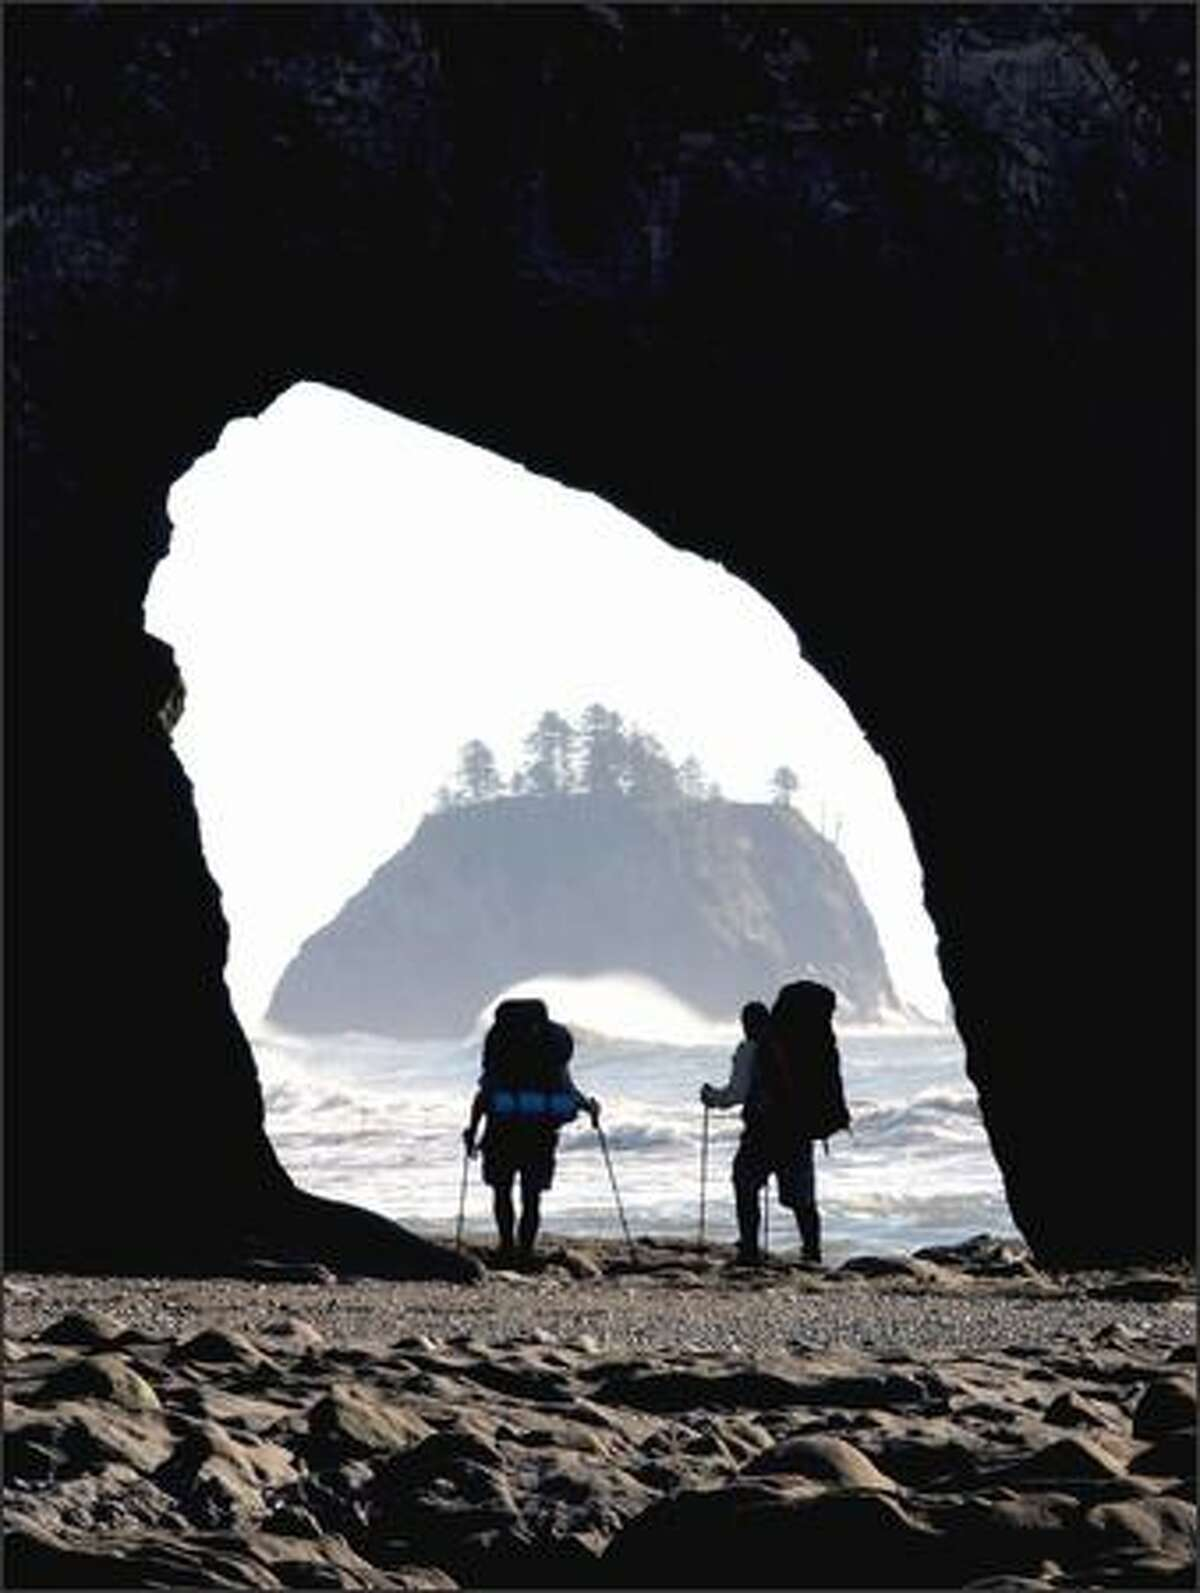 Hikers make their way at low tide through Hole in the Wall north of Rialto Beach on the Washington coast.